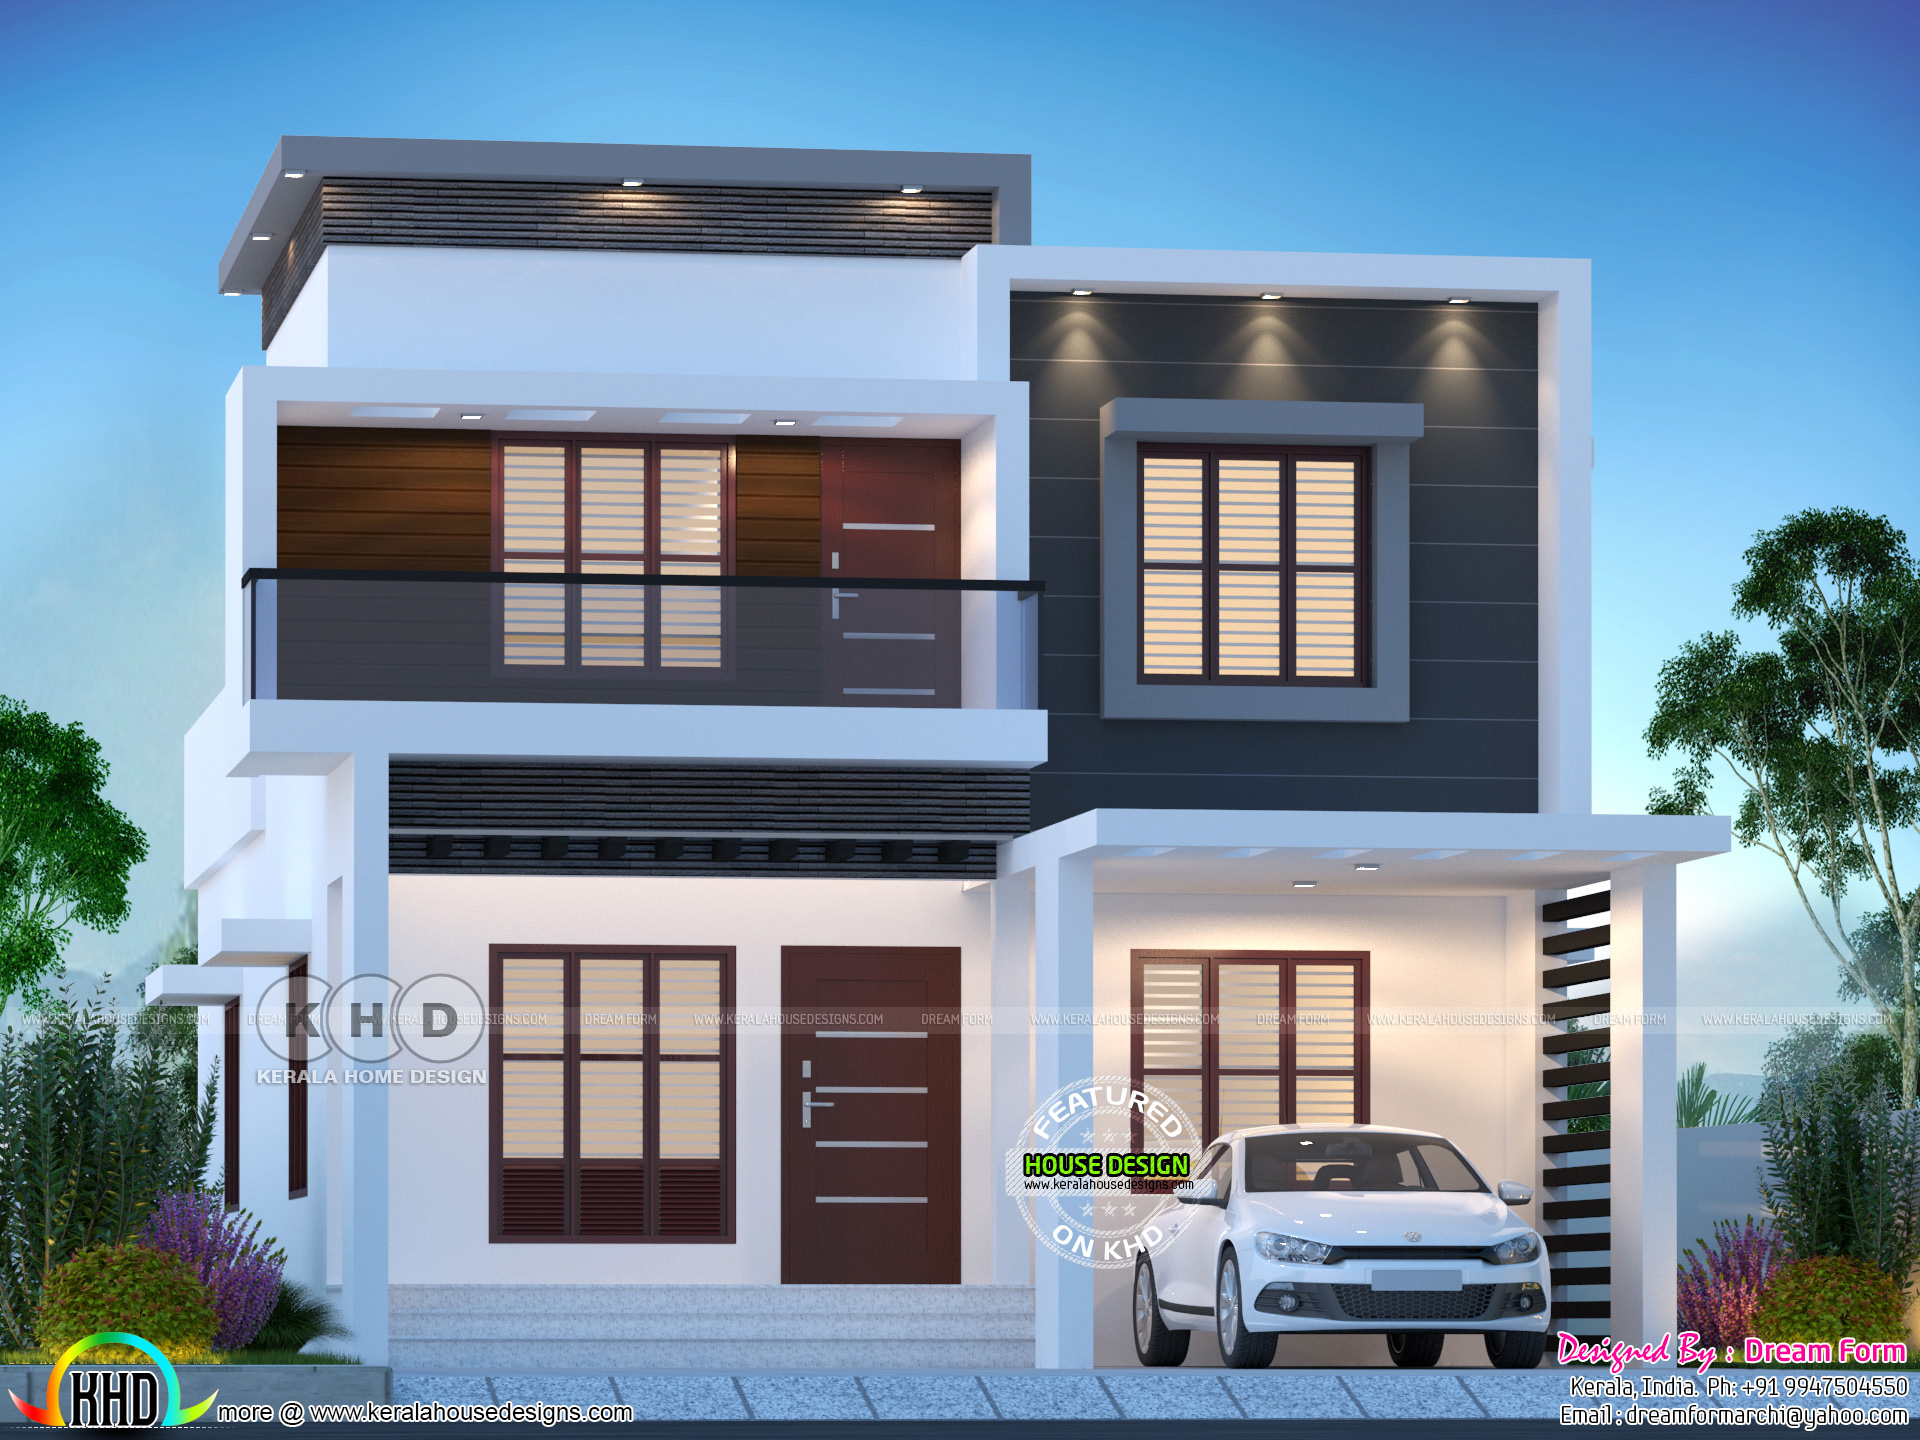 1775 Sq Ft 4 Bhk Modern Flat Roof House Kerala Home Design And Floor Plans 8000 Houses